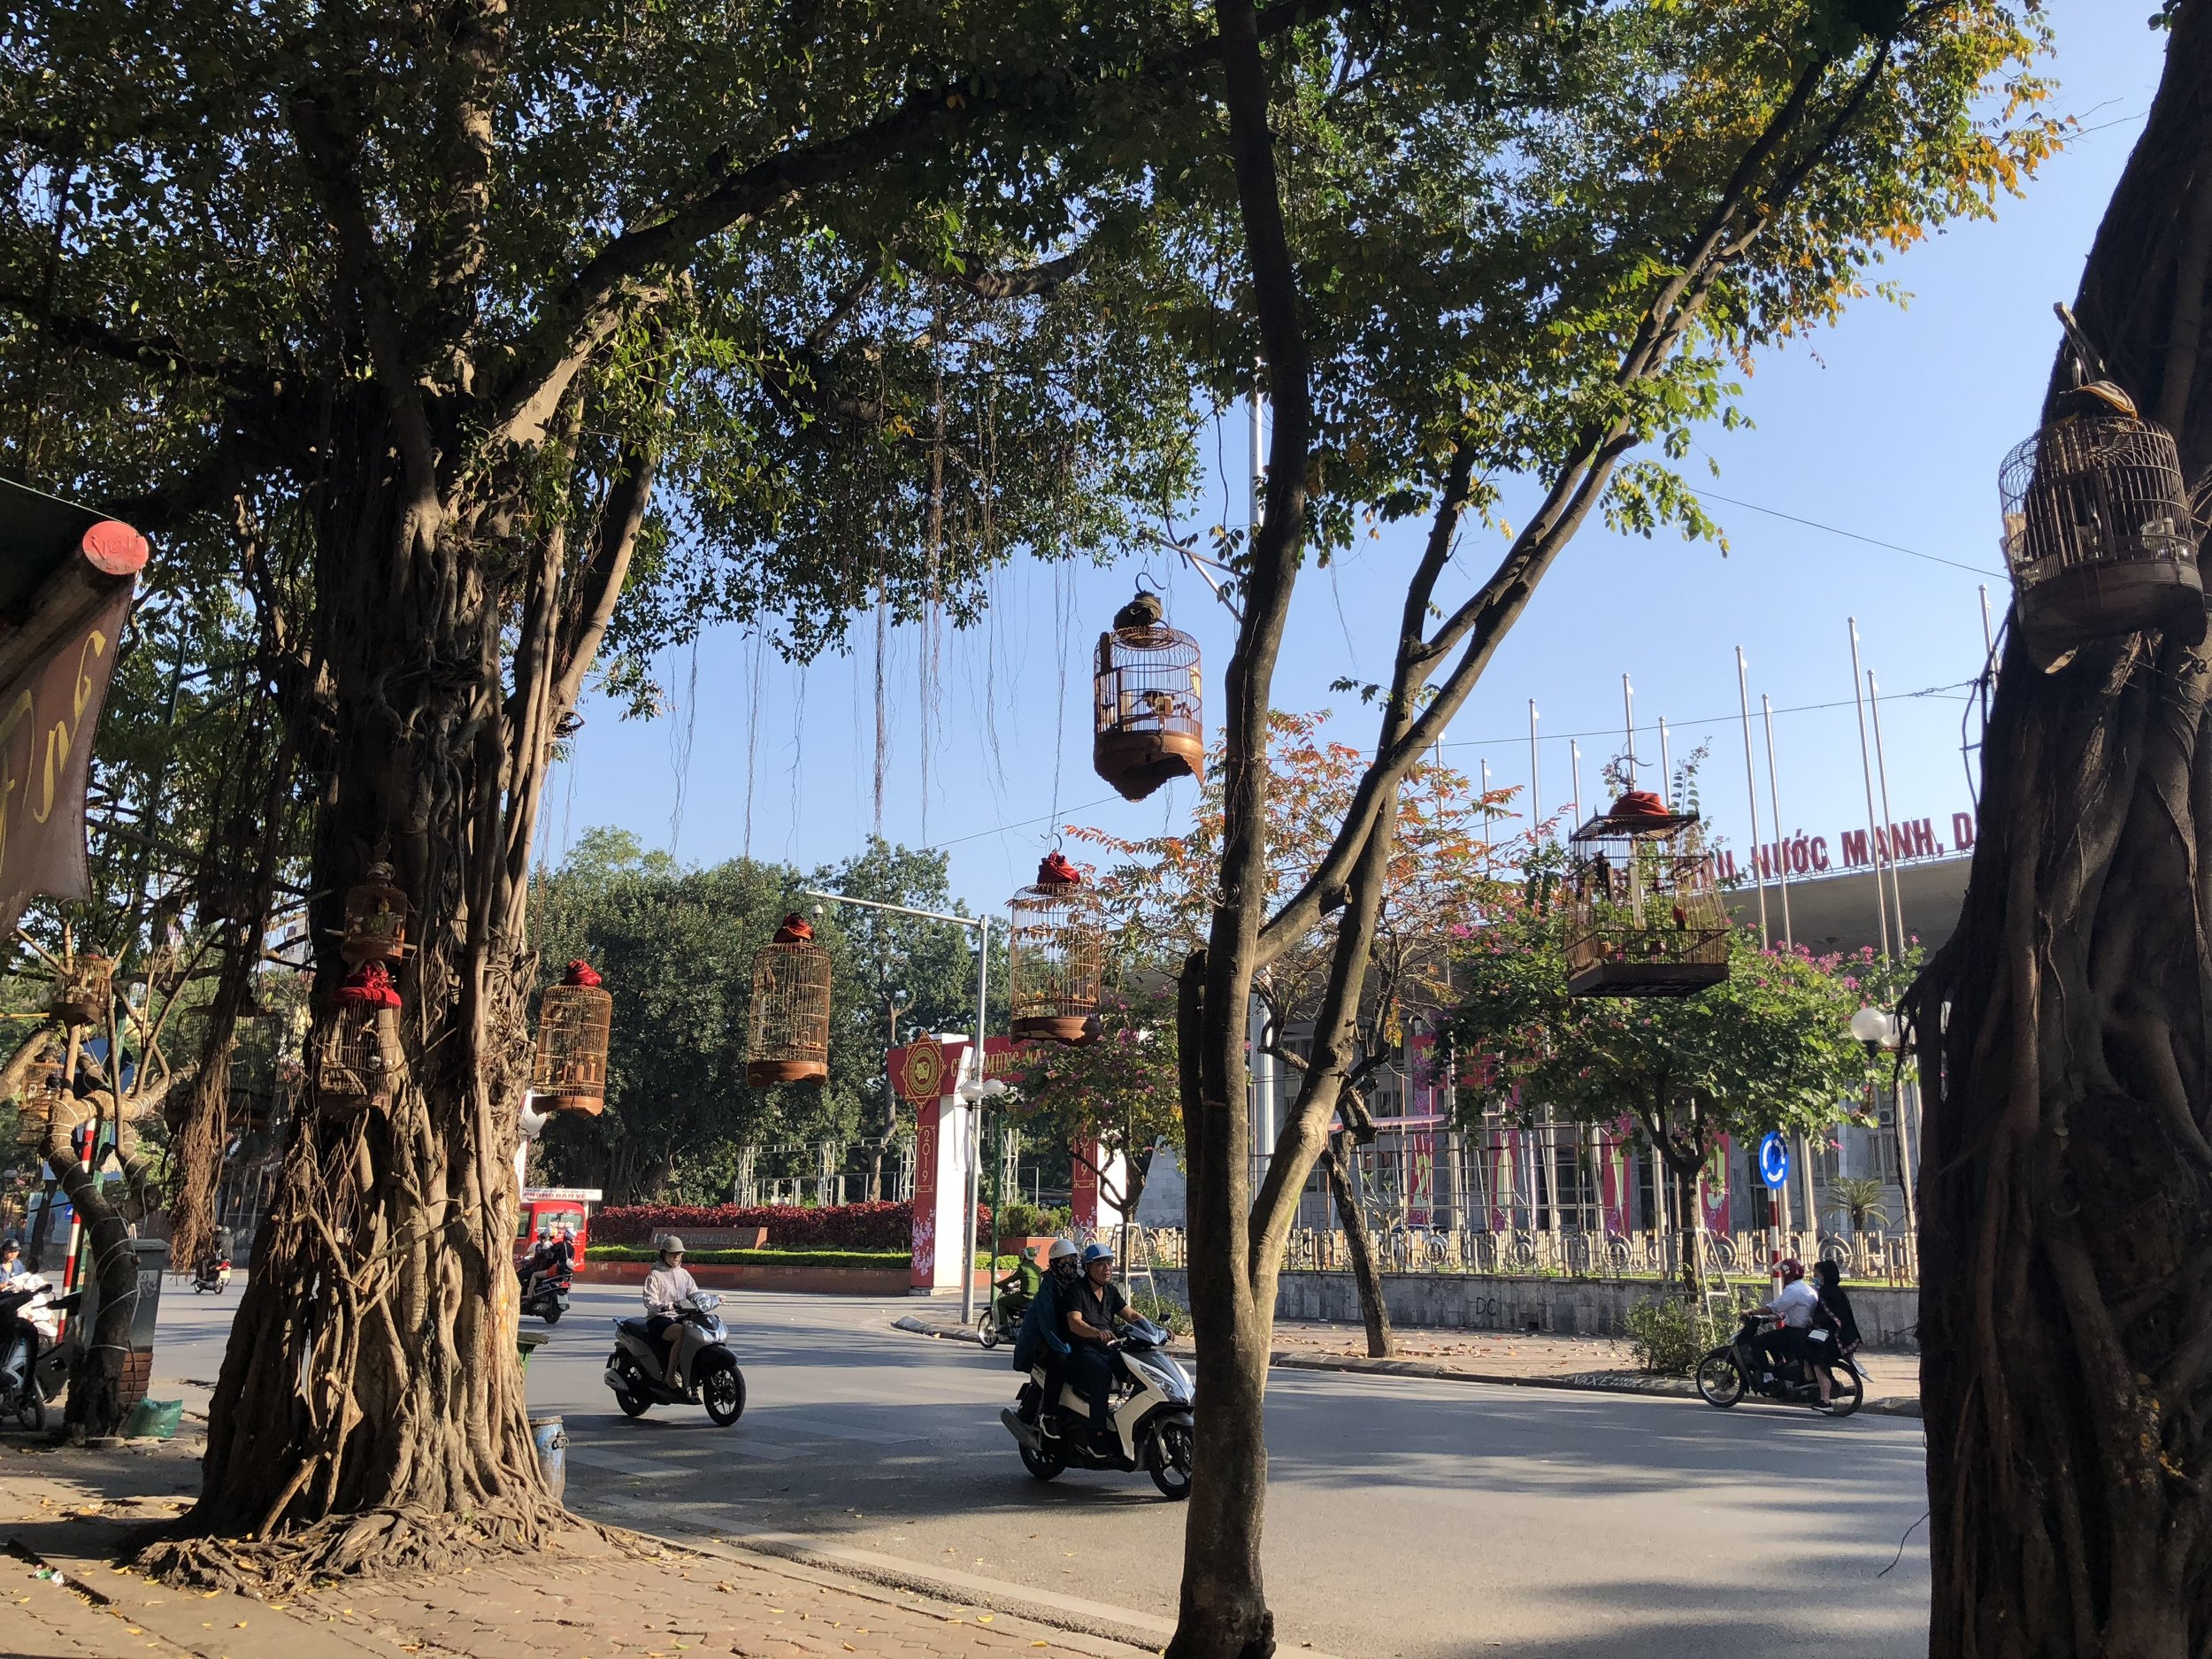 A great example of a Hà Nội street: motorbikes, beautiful trees, and the occasional bird in a cage.